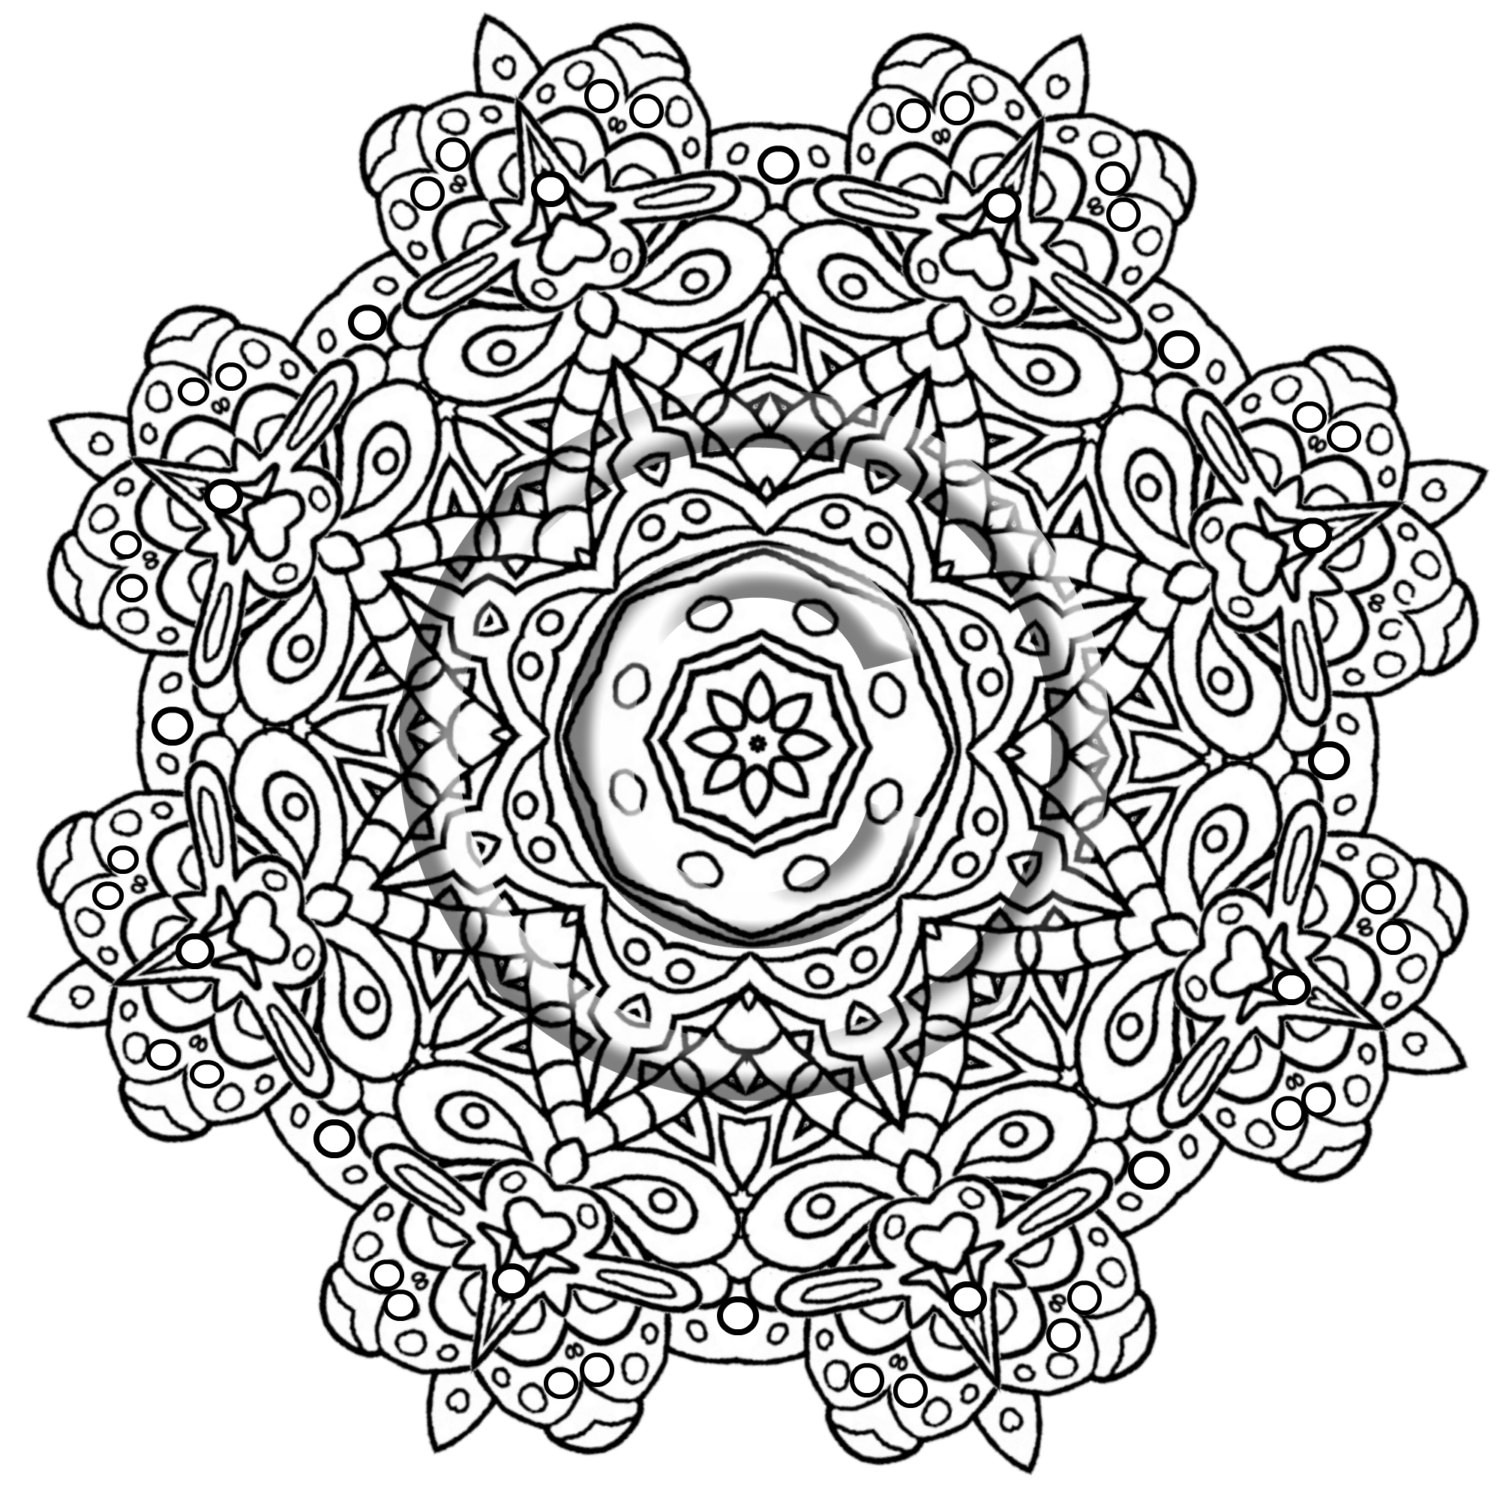 1500x1492 Printable Complex Mandala Coloring Pages Inside Intricate Idea